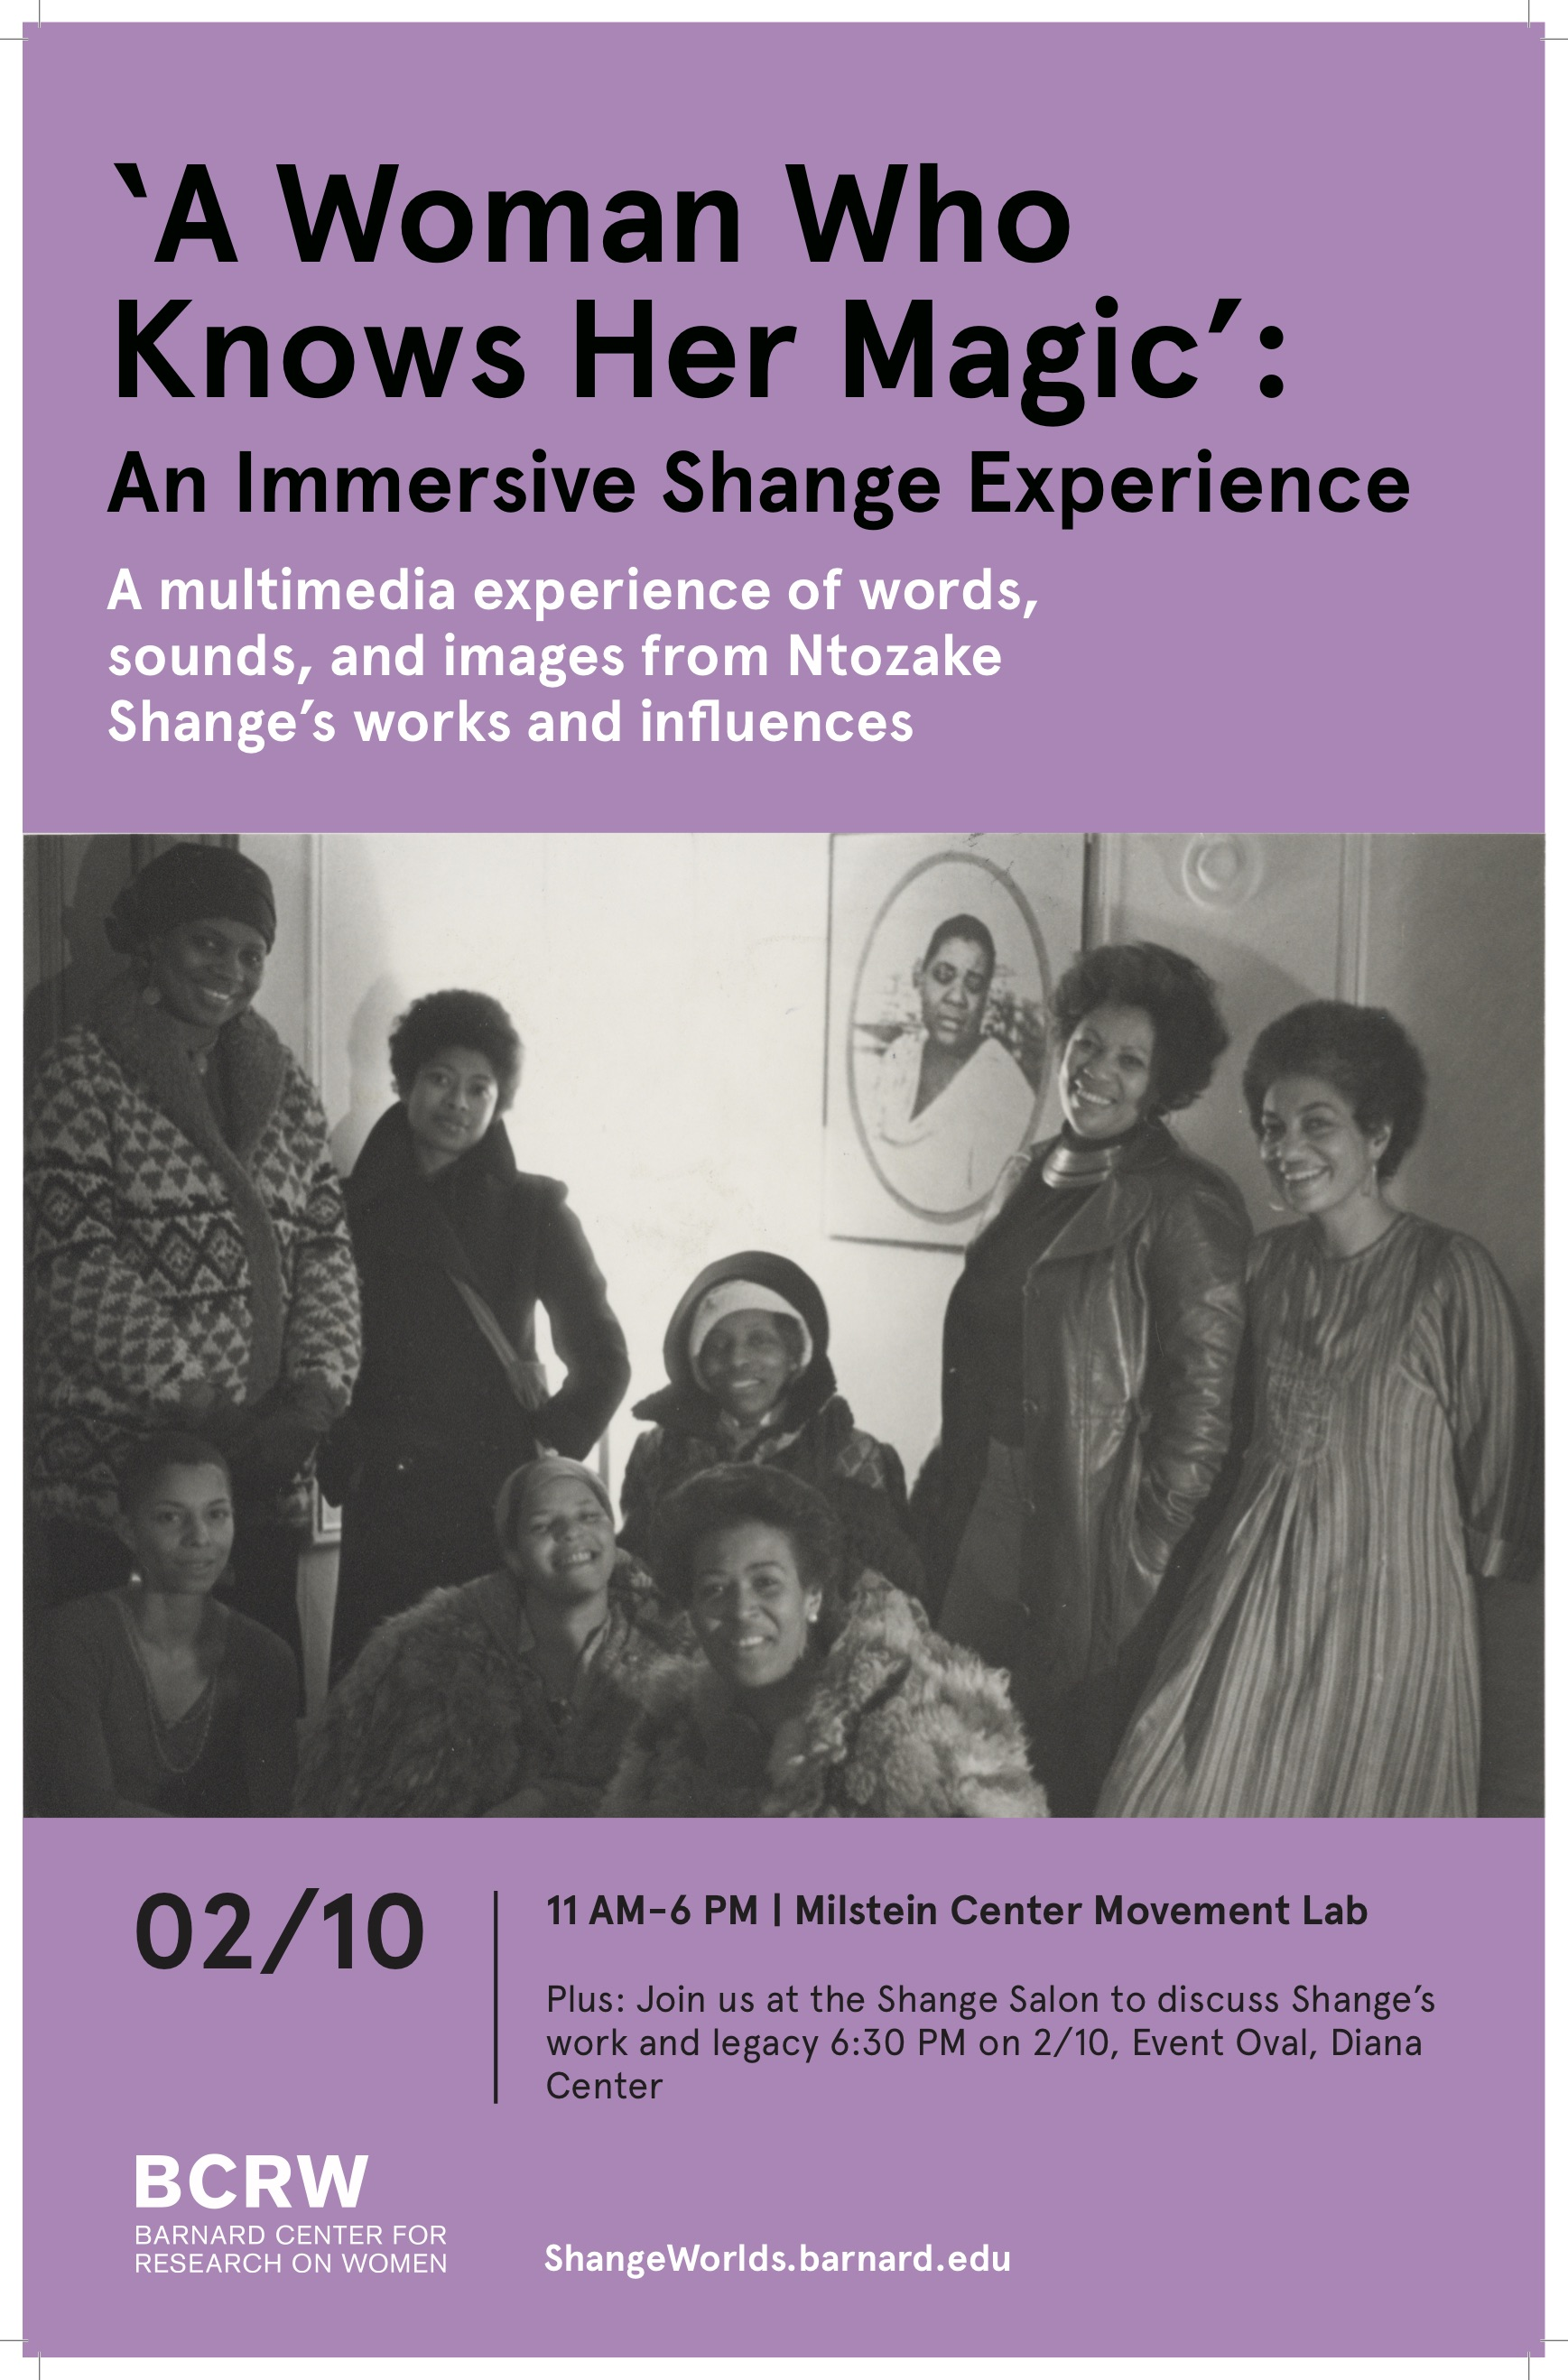 Shange Movement Lab Event Poster